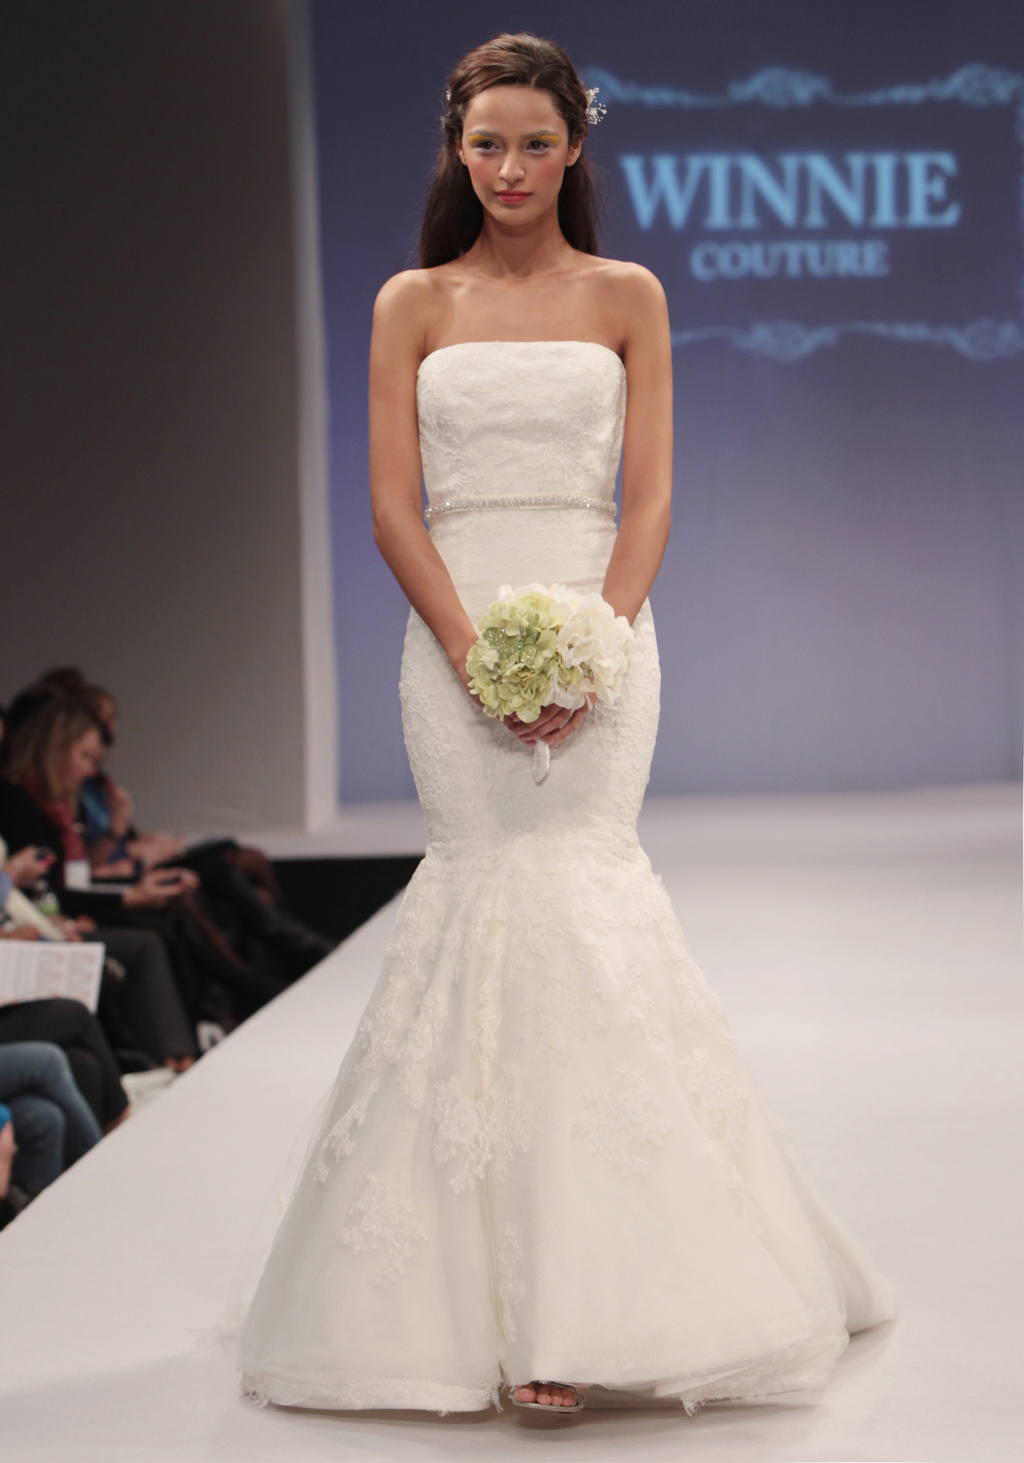 Winnie-couture-bridal-gown-spring-2013-wedding-dress-paige.full